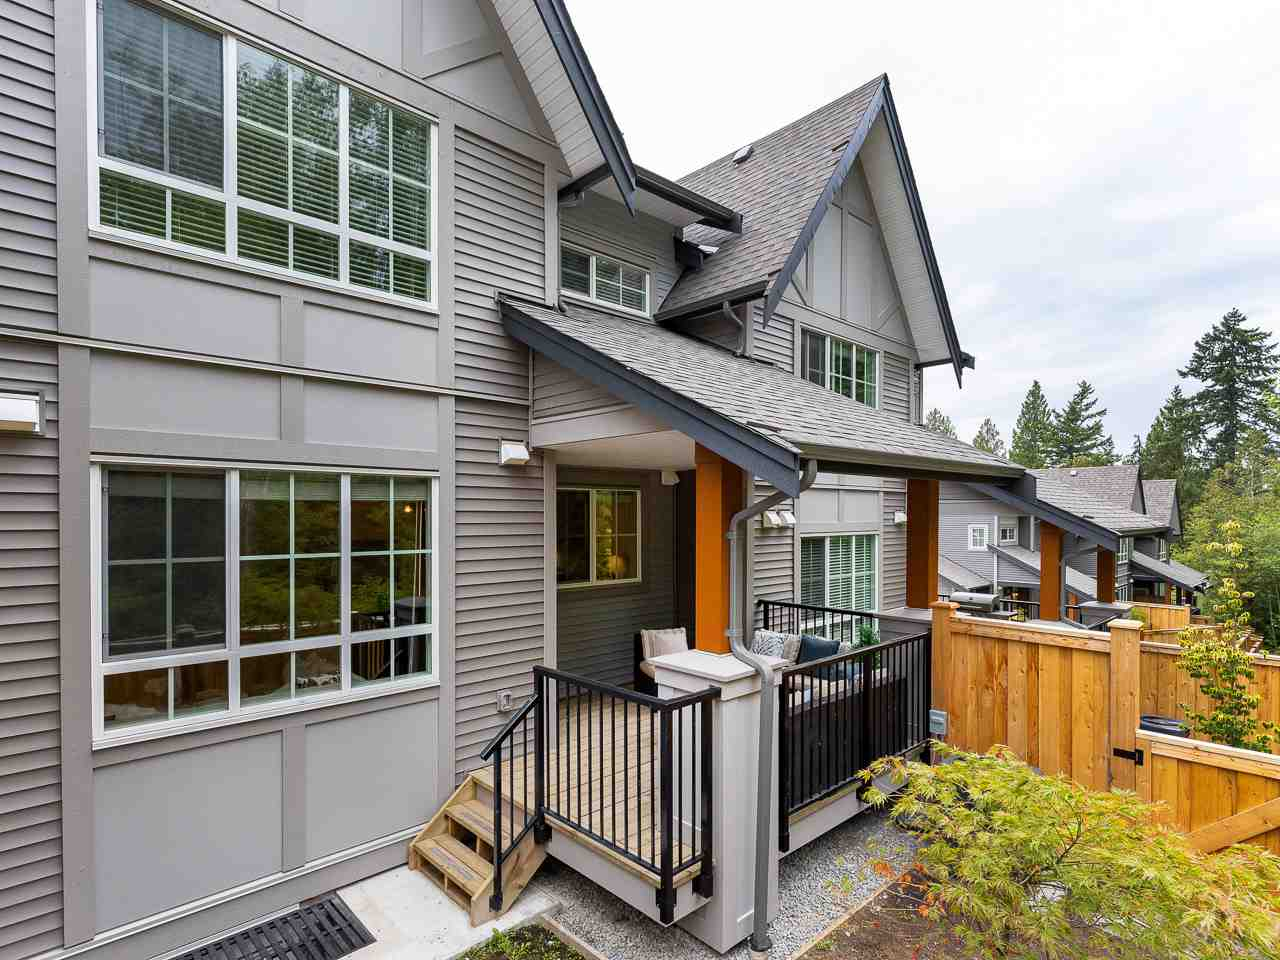 Stunning new tudor-style 4 bed/4 bath townhome in Kanaka Hills, just like a detached home, no front hall stairs. Living areas, yard & 2-car garage all on one level, the largest & most sought-after plan in complex. Notable features: contemporary white & grey interior finishes w/ large kitchen island, upgraded pantry & SS appliances incl. gas stove. Large bedrooms with green belt views & family room below. Lush patio off the living areas & onto the greenbelt, great for entertaining. Master features large ensuite, WIC & additional closet. Forced air heating & A/C. Serene, tranquil, family-friendly area w/ trails, shopping, recreation, restaurants, transit & 1 block from Elementary school! Worry-free, quiet living with room to grow. OPEN Sun Aug 18 - 2-4pm